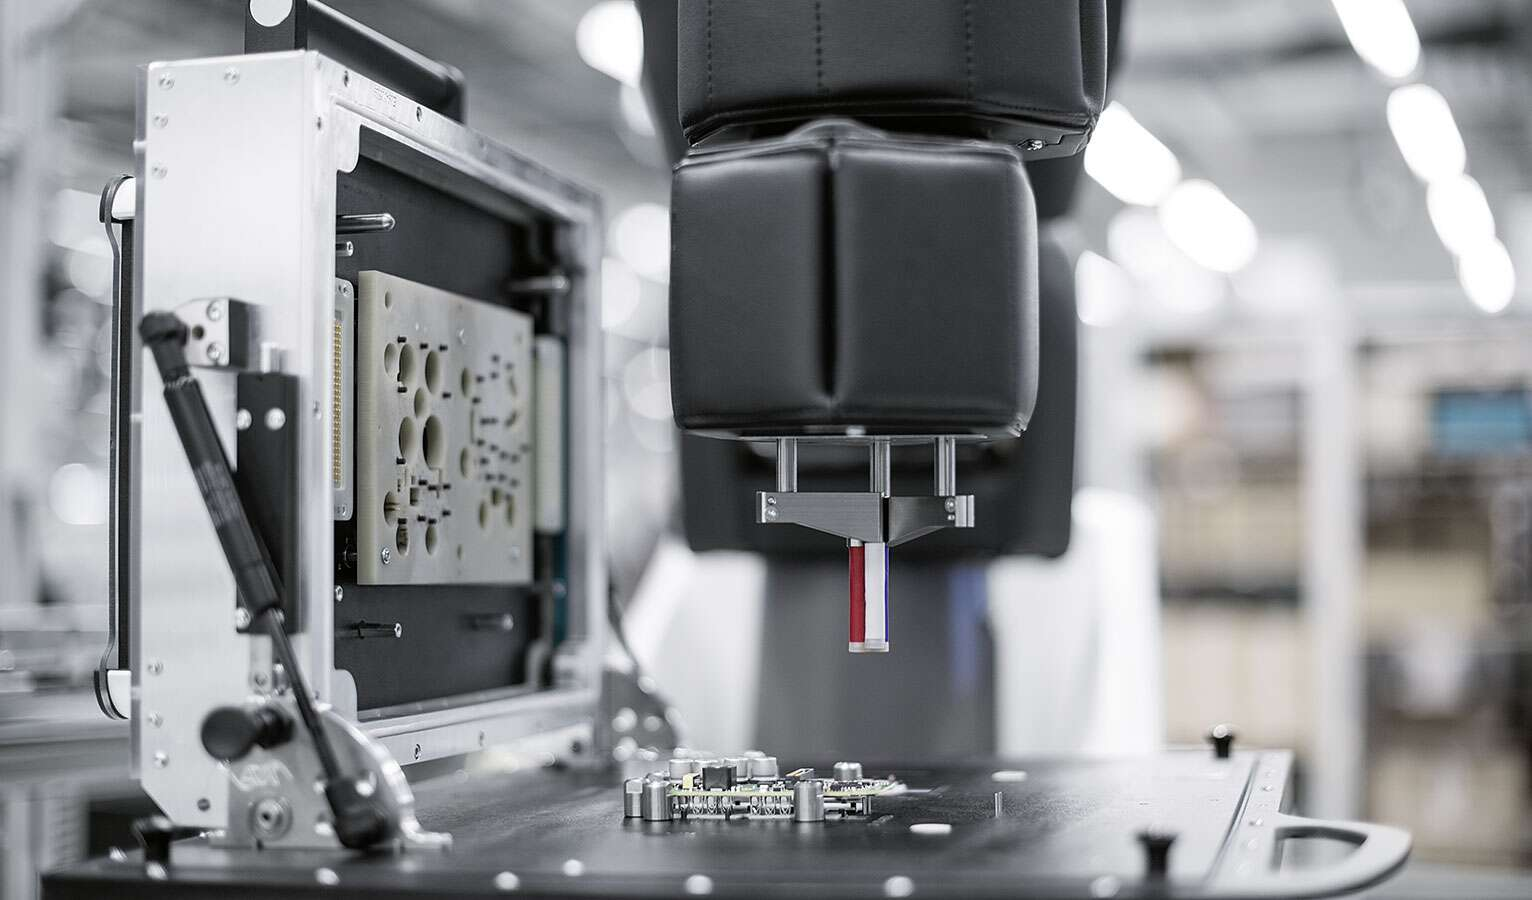 An APAS robot from Bosch supports employees at the Scharnhausen Technology Plant in the quality inspection of printed circuit boards.